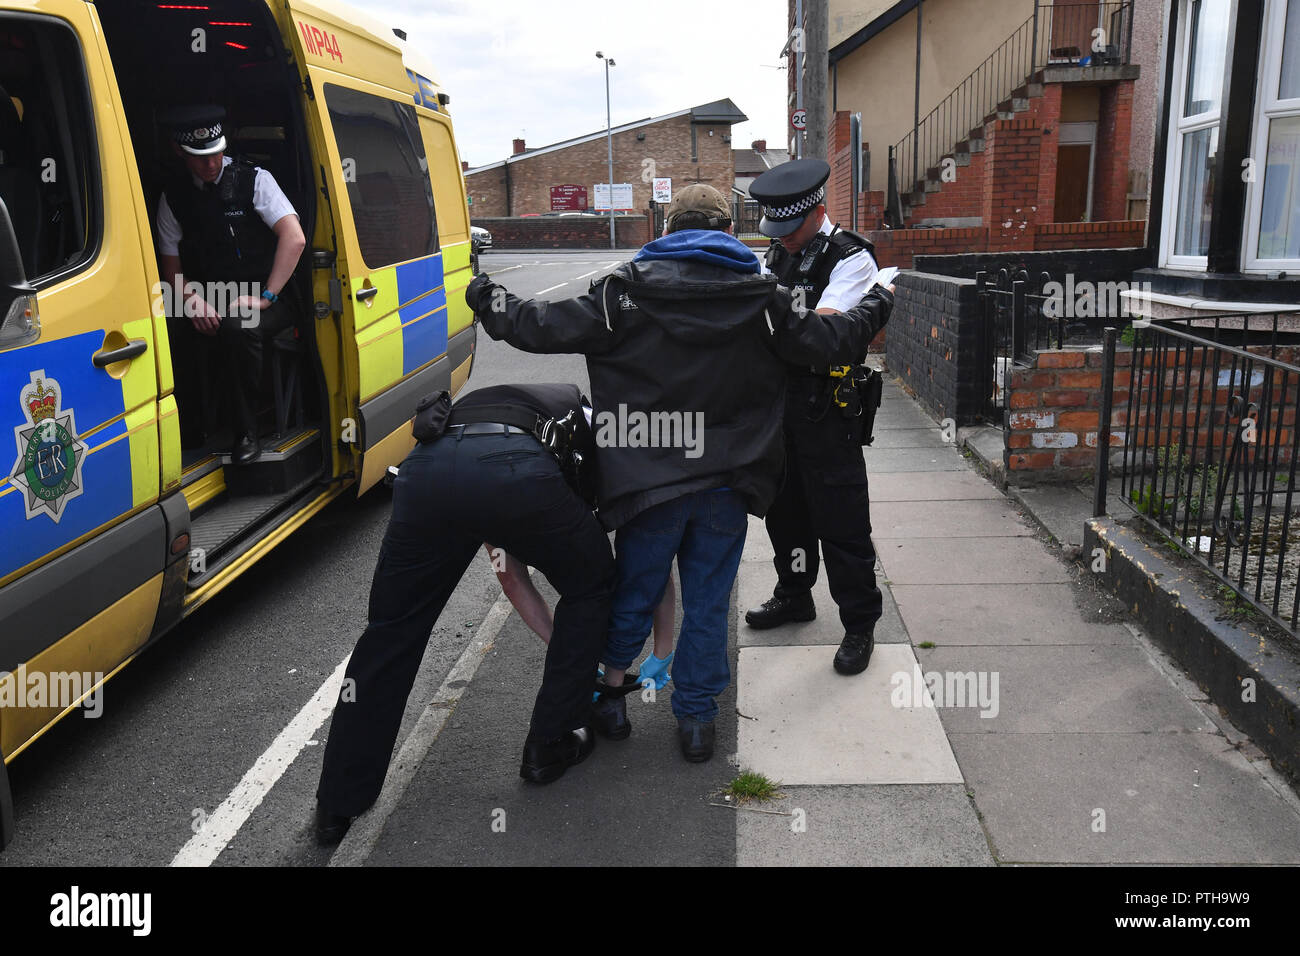 Merseyside Police officers carry out a Stop and Search in the Bootle area of Liverpool - Stock Image